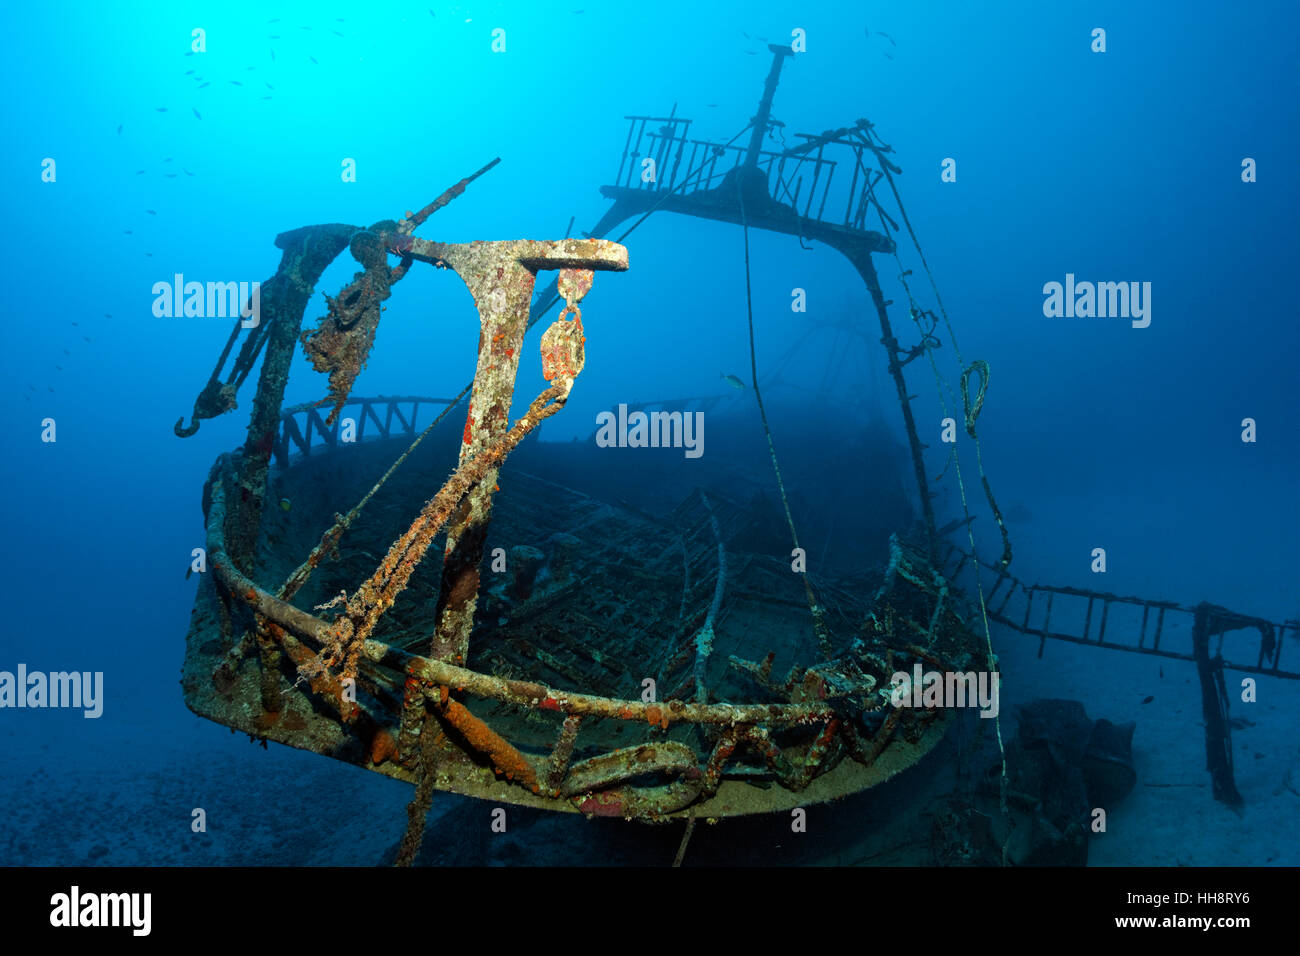 Bow of fishing vessel, shipwreck, Ras Banas, St. Johns, Sirnaka Island, Red Sea, Egypt - Stock Image